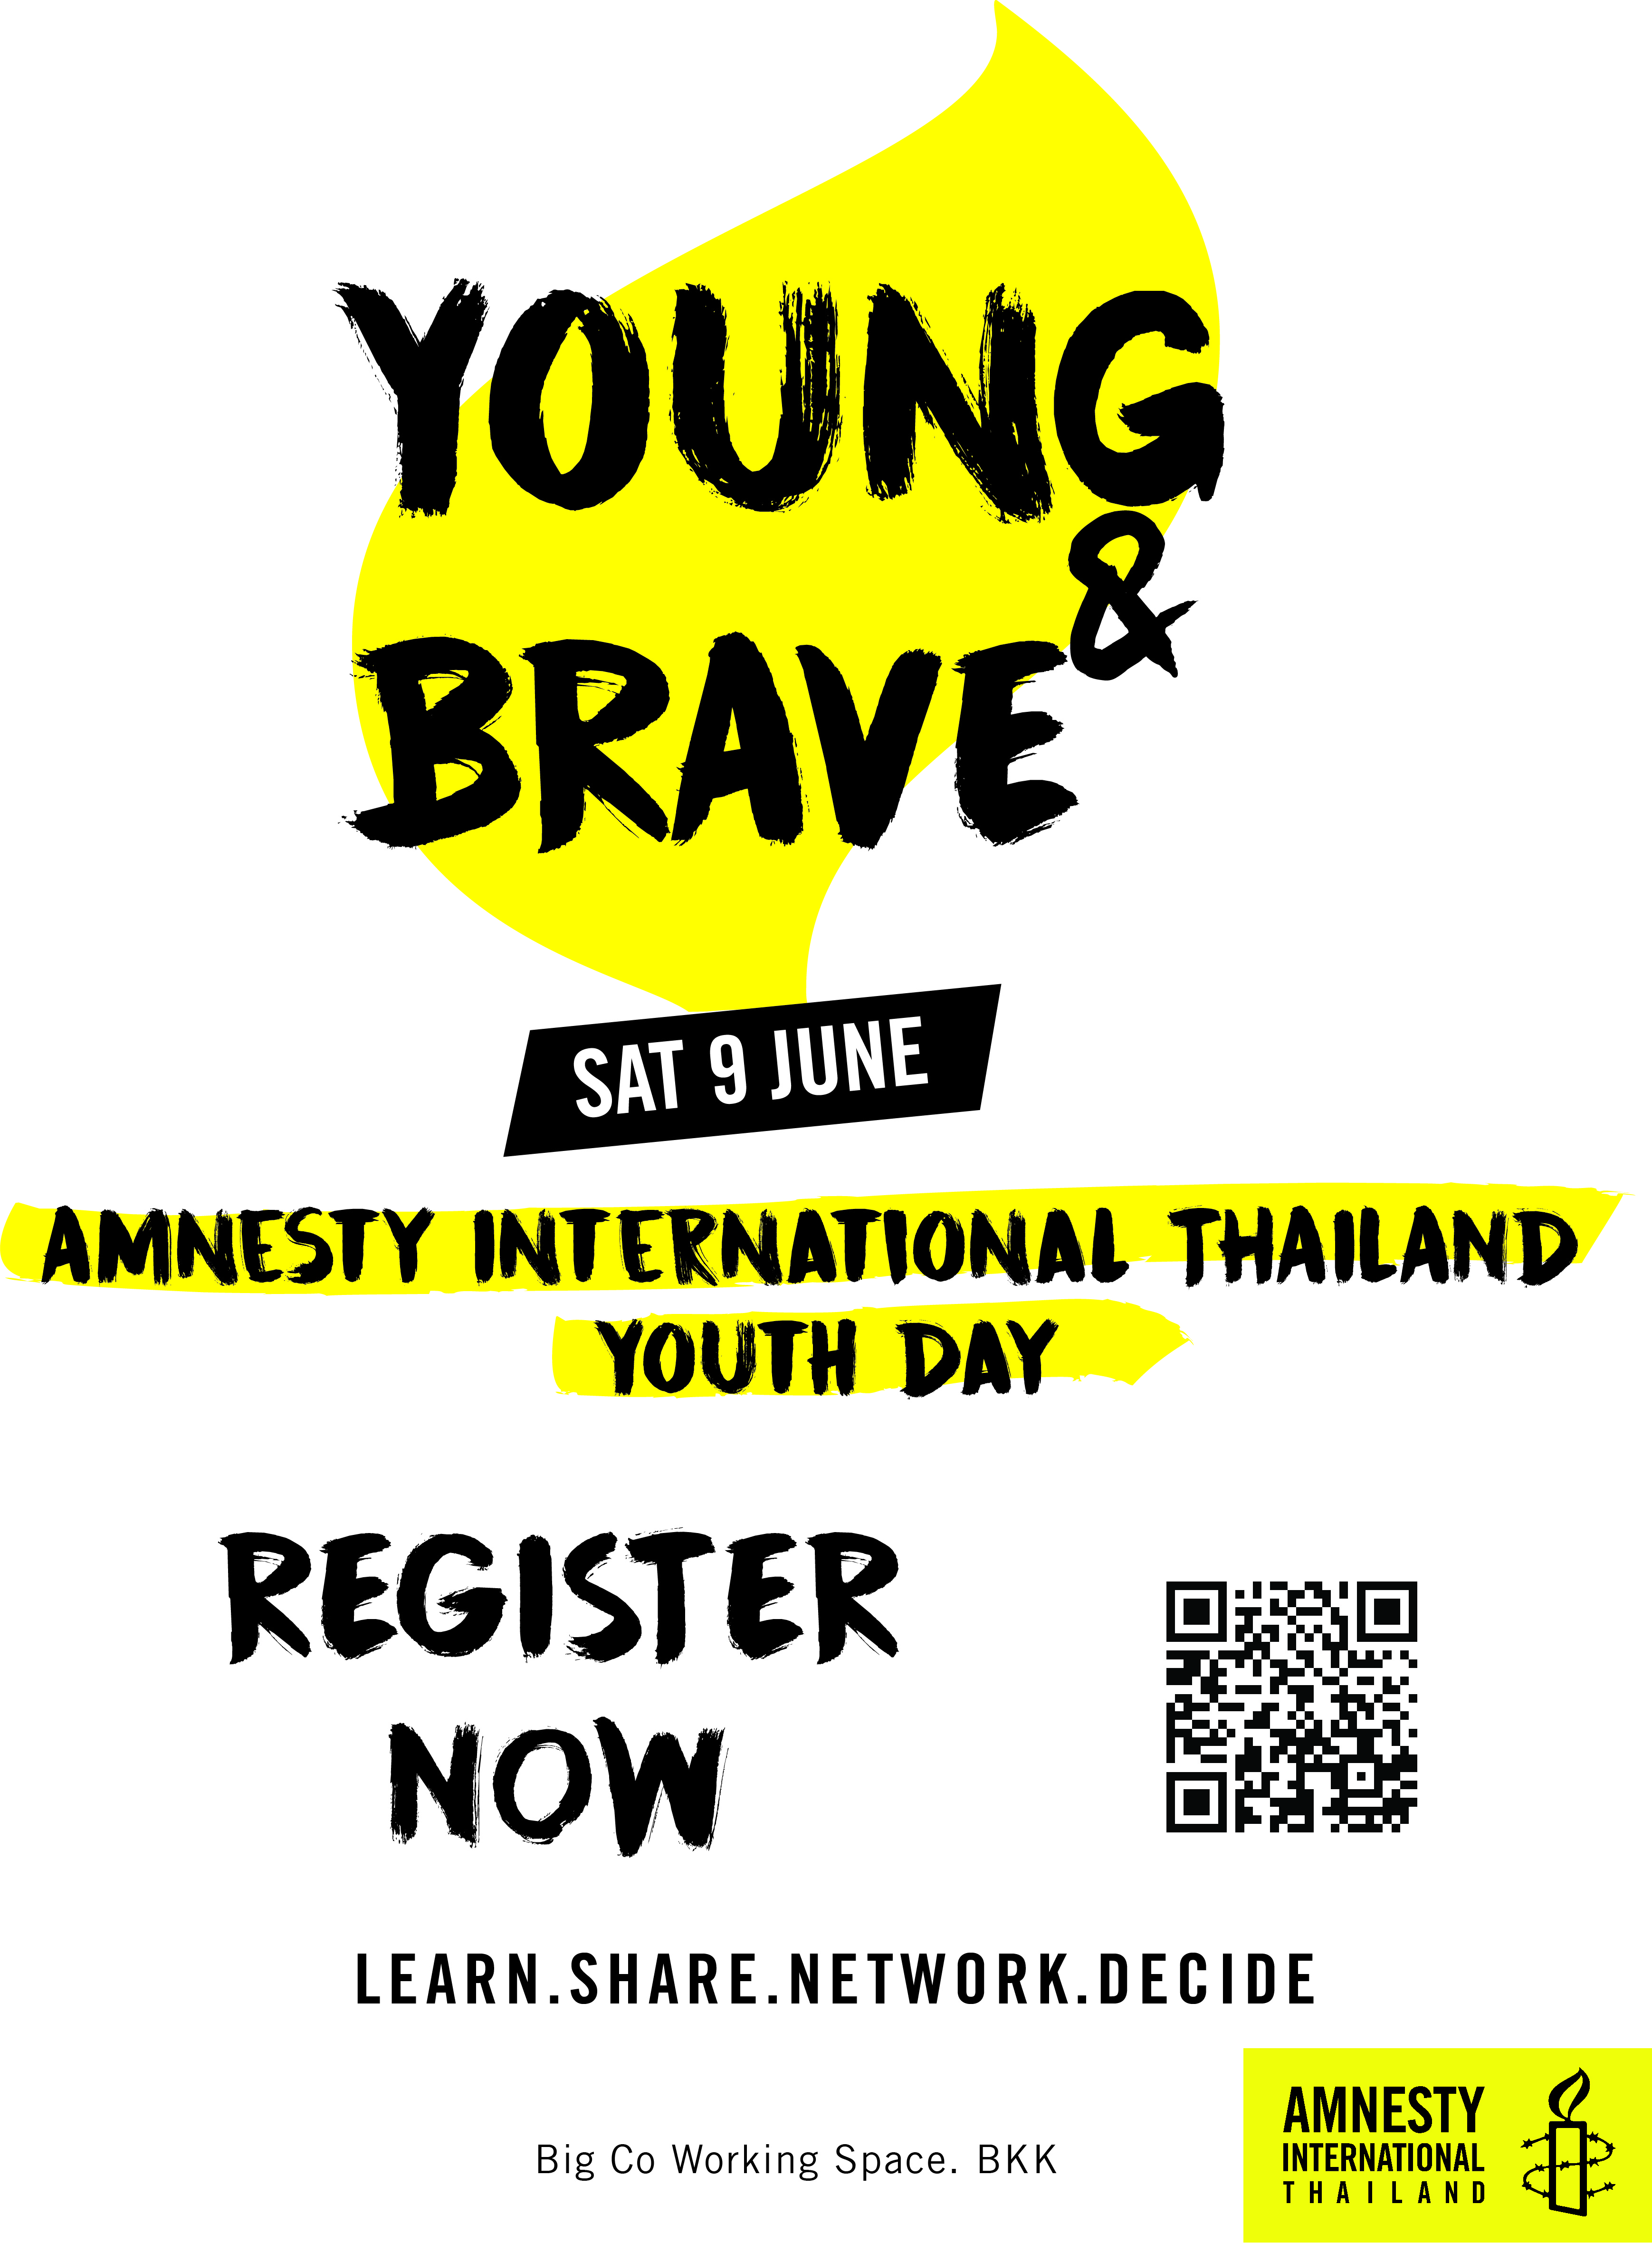 Poster.youth day.jpg